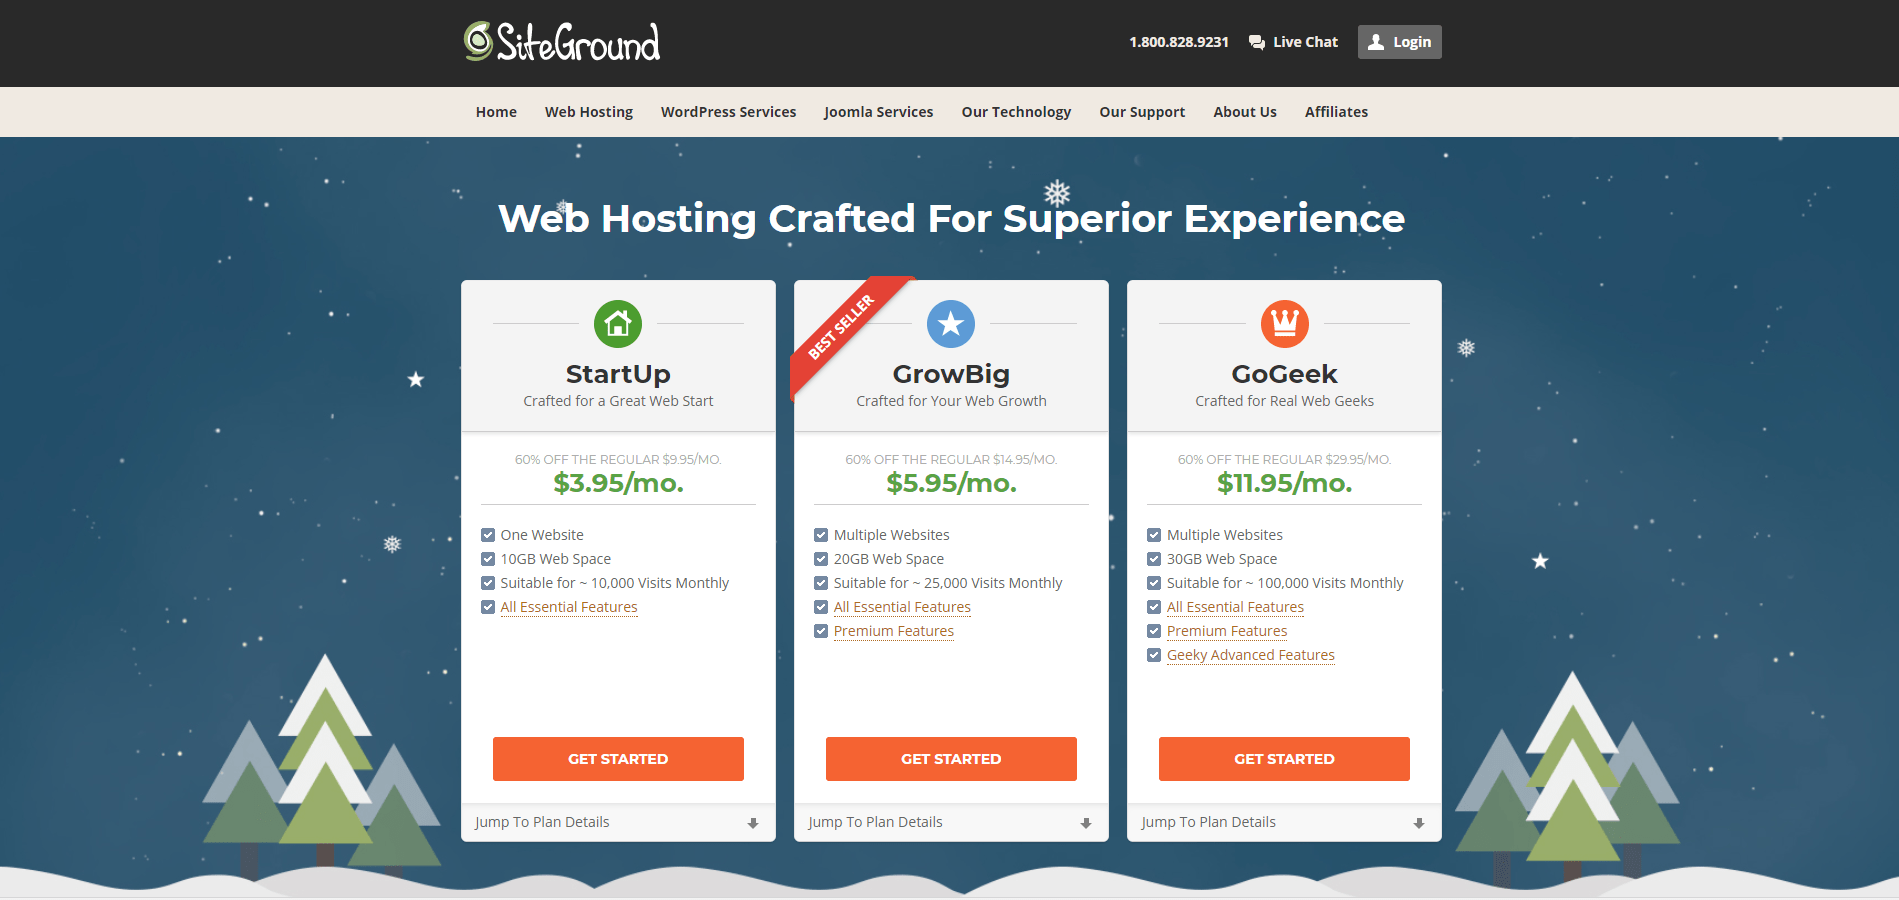 Linux hosting with SiteGround via WhoIsHostinThis.com